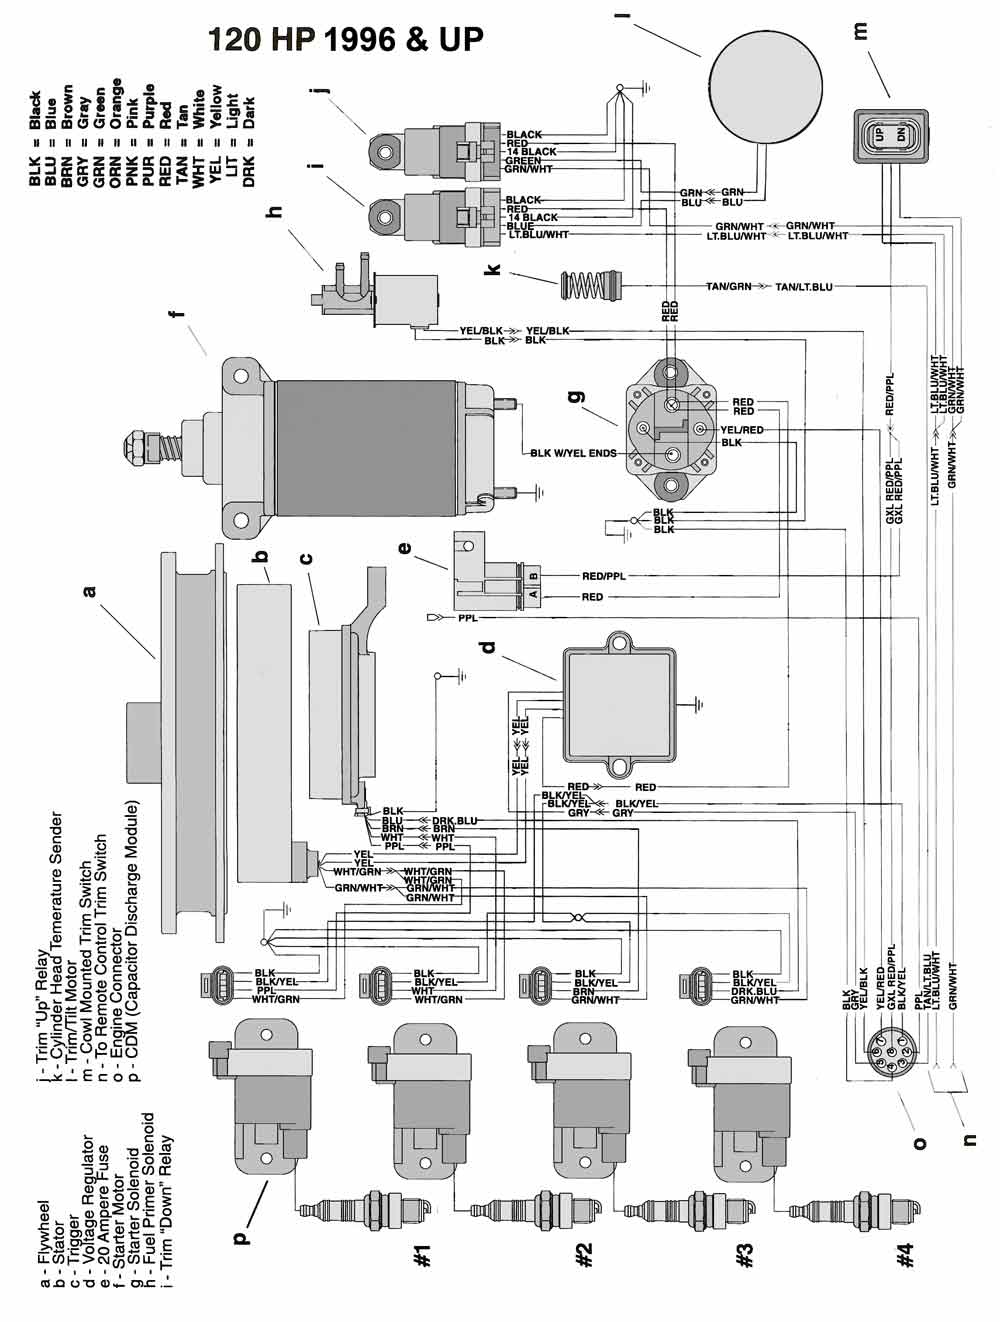 hight resolution of 120 mercruiser engine wiring diagram wiring diagram todays rh 20 13 9 1813weddingbarn com mercruiser trim